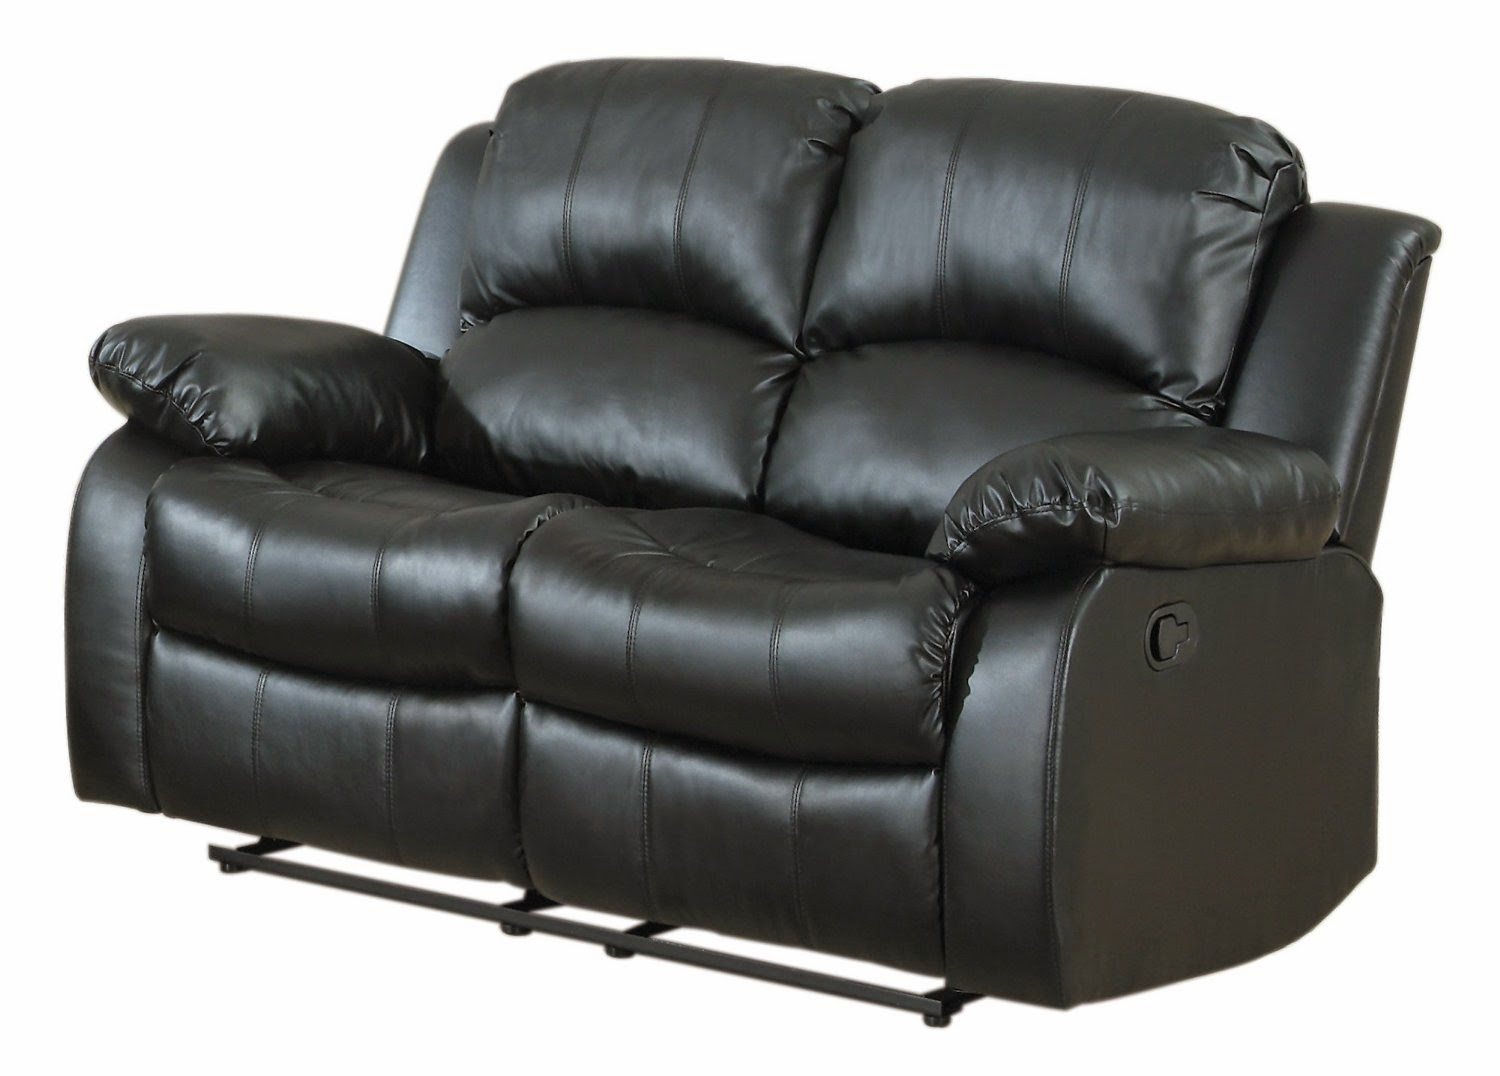 Cheap recliner sofas for sale black leather reclining Reclining leather sofa and loveseat